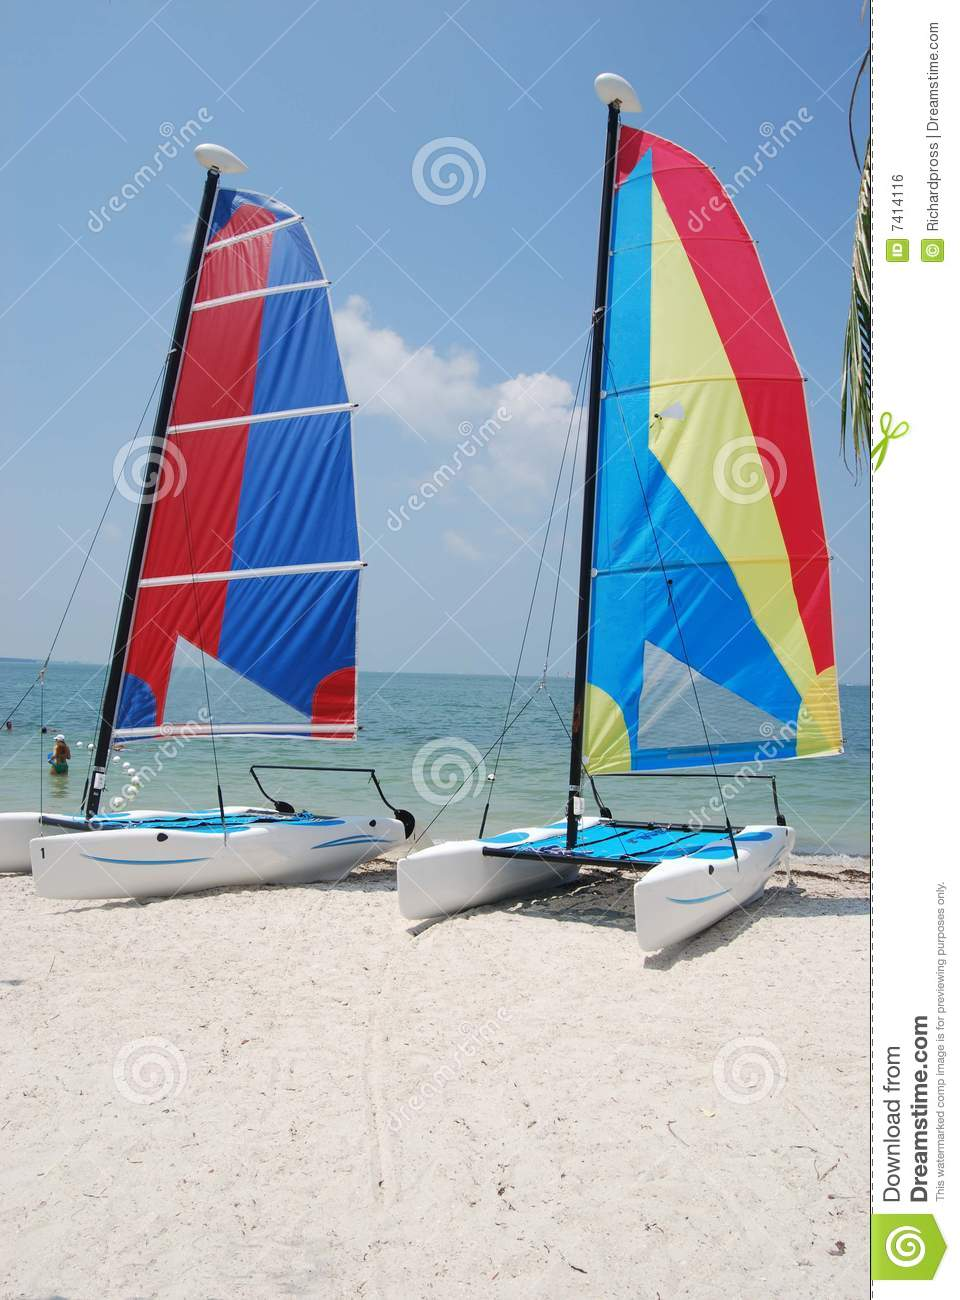 Small Sailing Catamarans Royalty Free Stock Image - Image: 7414116